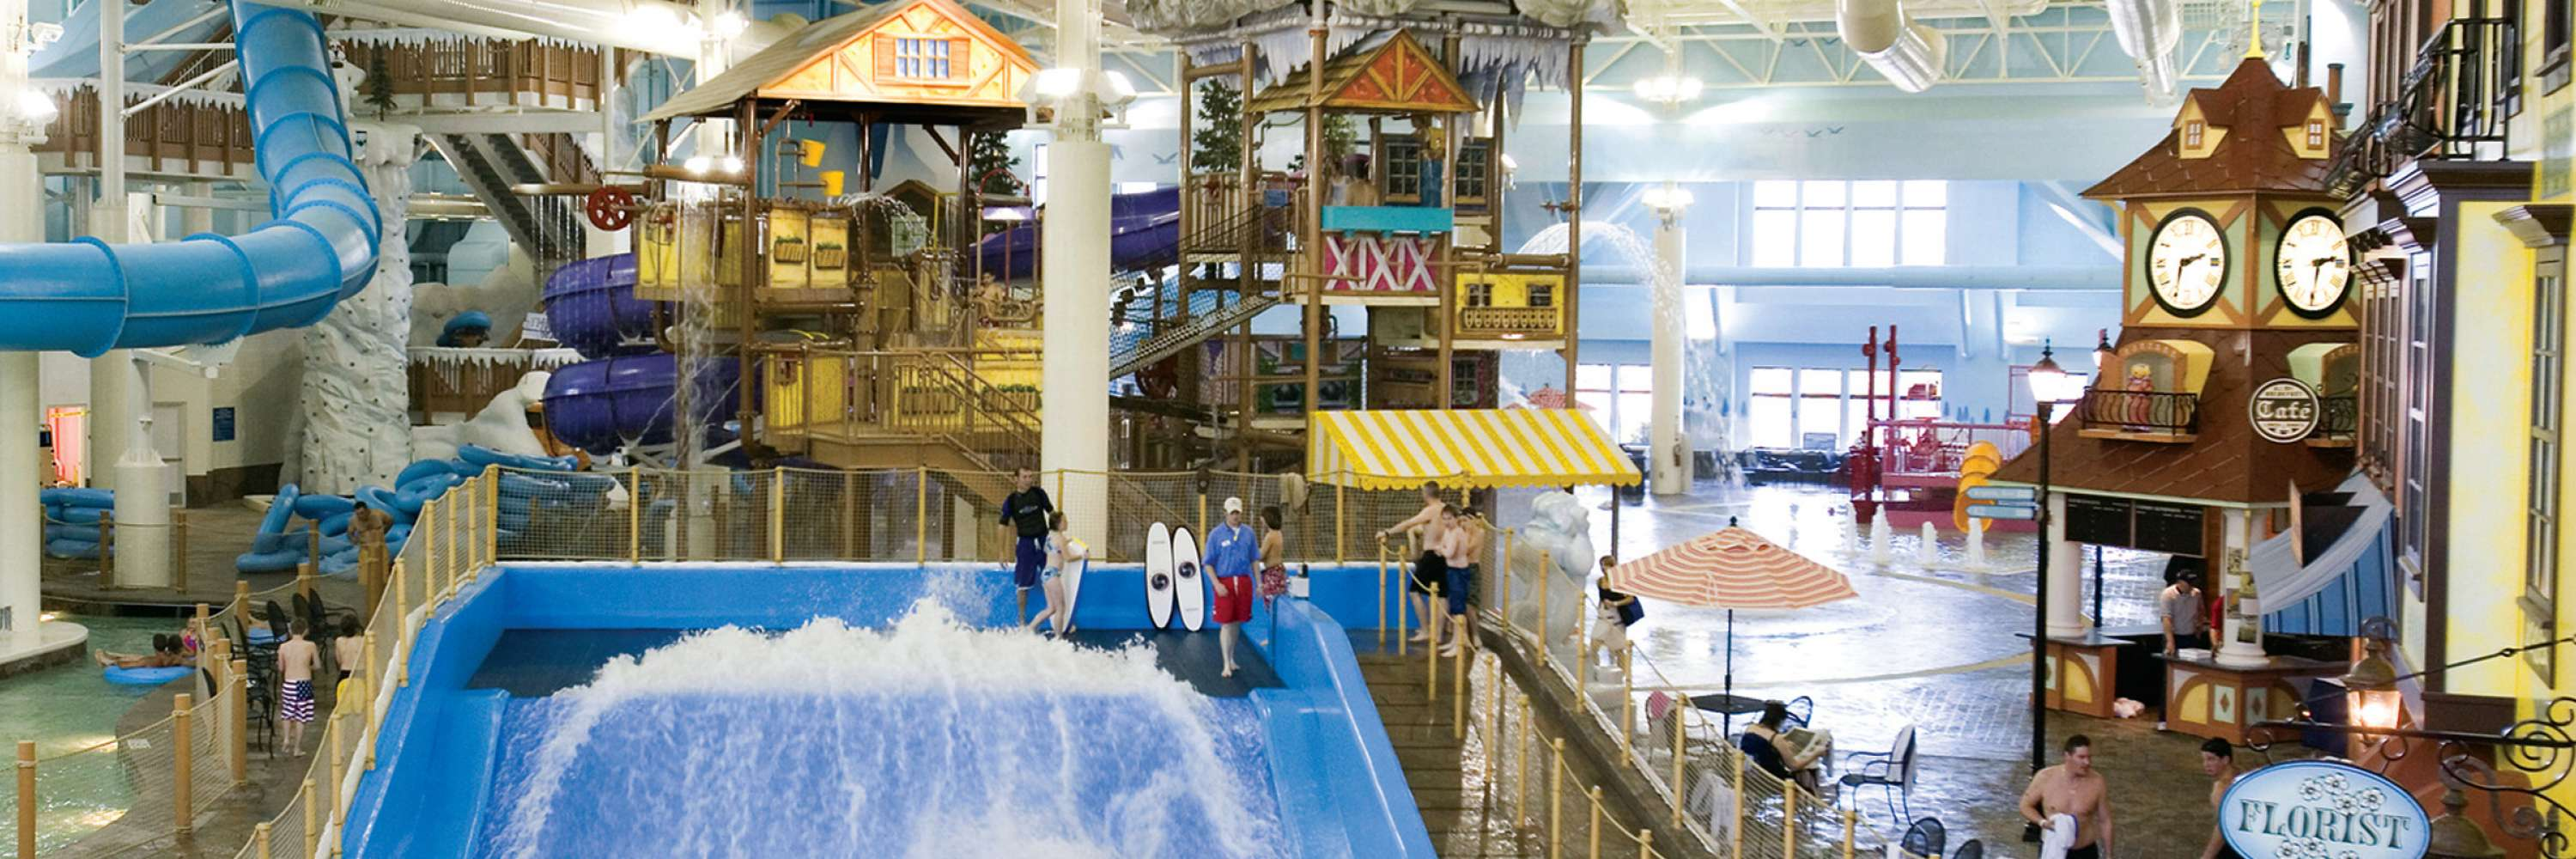 Water Parks Michigan